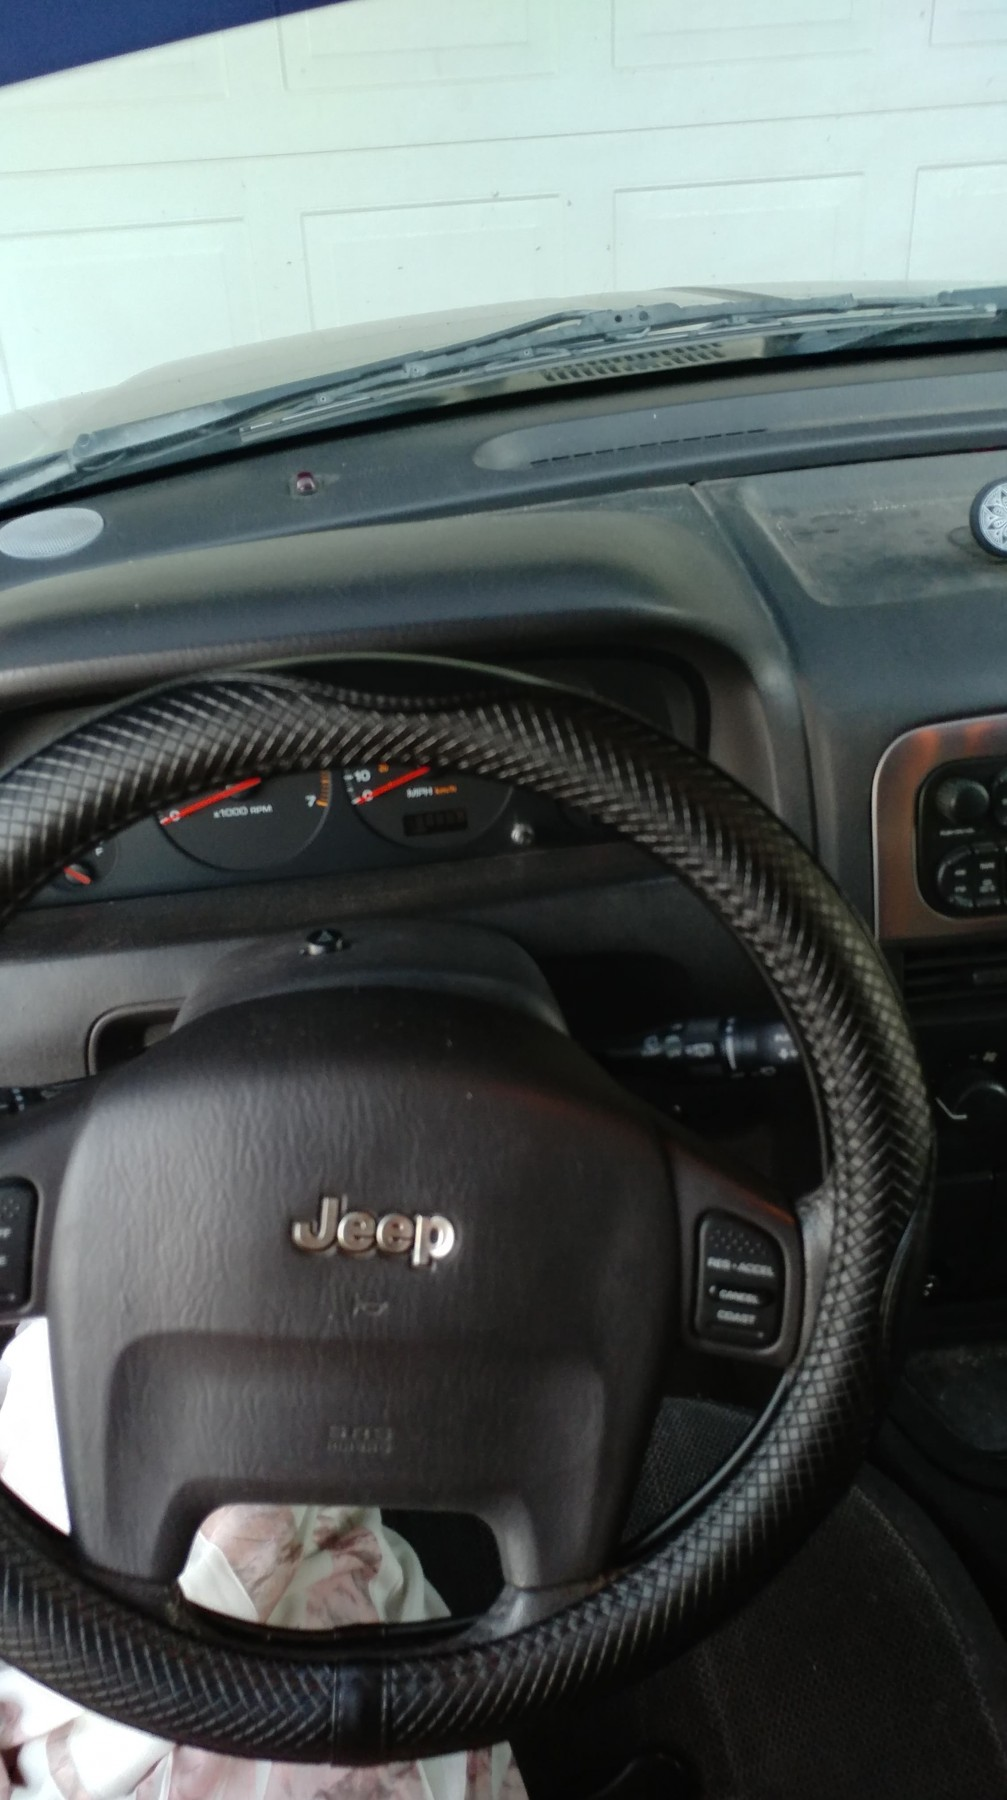 Personally think it makes the Jeep look and feel newer.